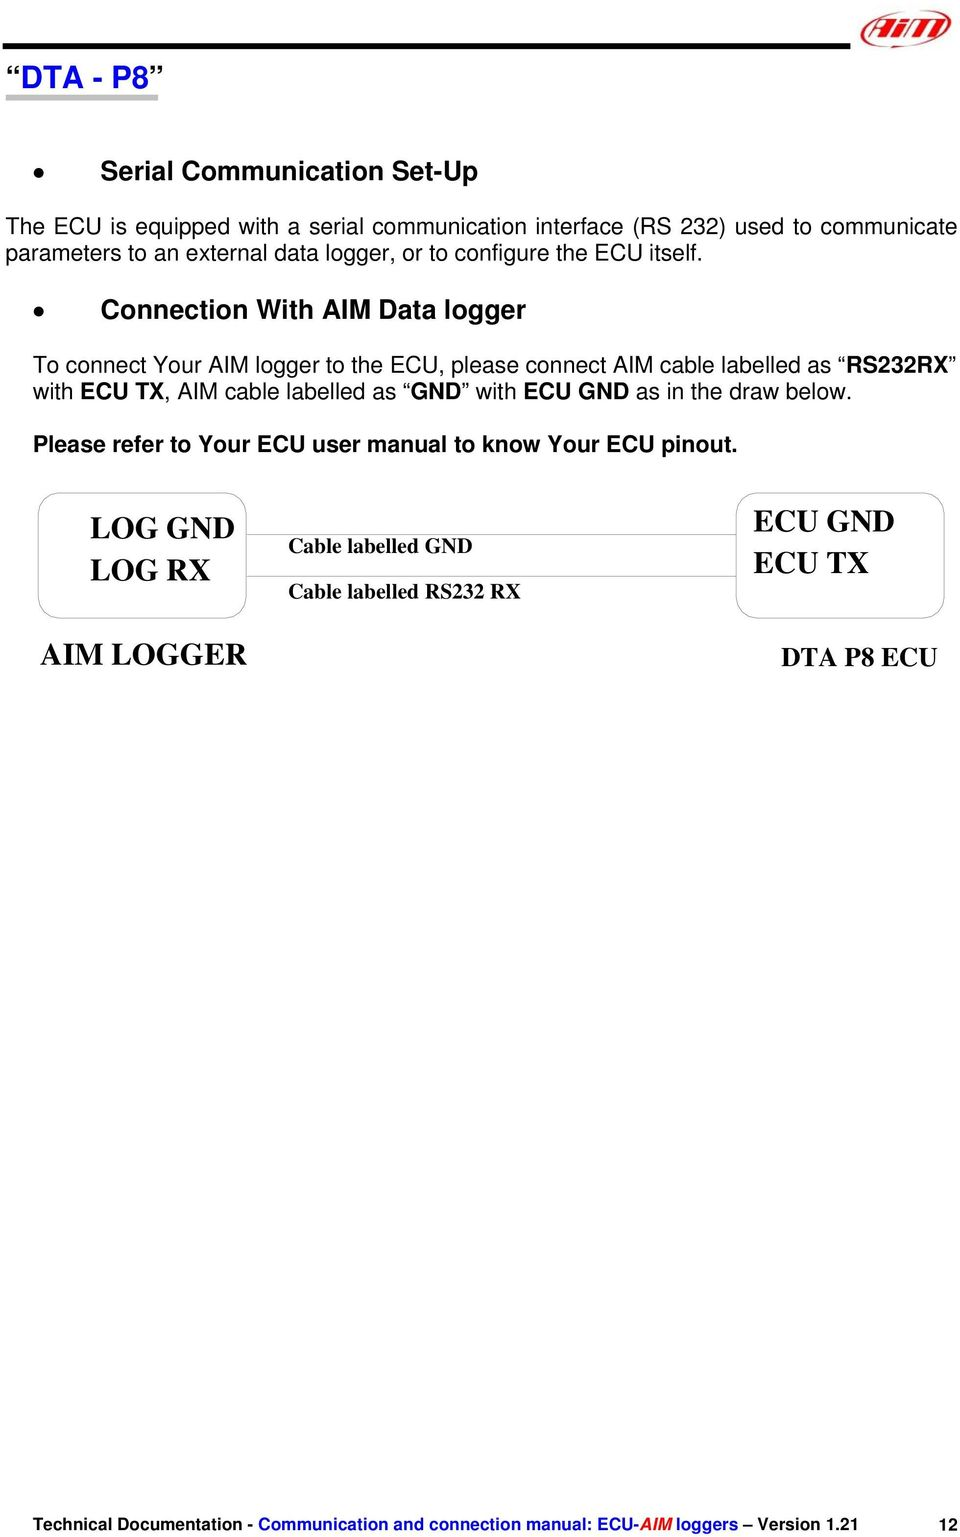 Ecu Communication Protocol General Information Pdf Bmw 20 Pin Connector Pinout On Ide To Usb Cable Wiring Diagram Connection With Aim Data Logger Connect Your The Please